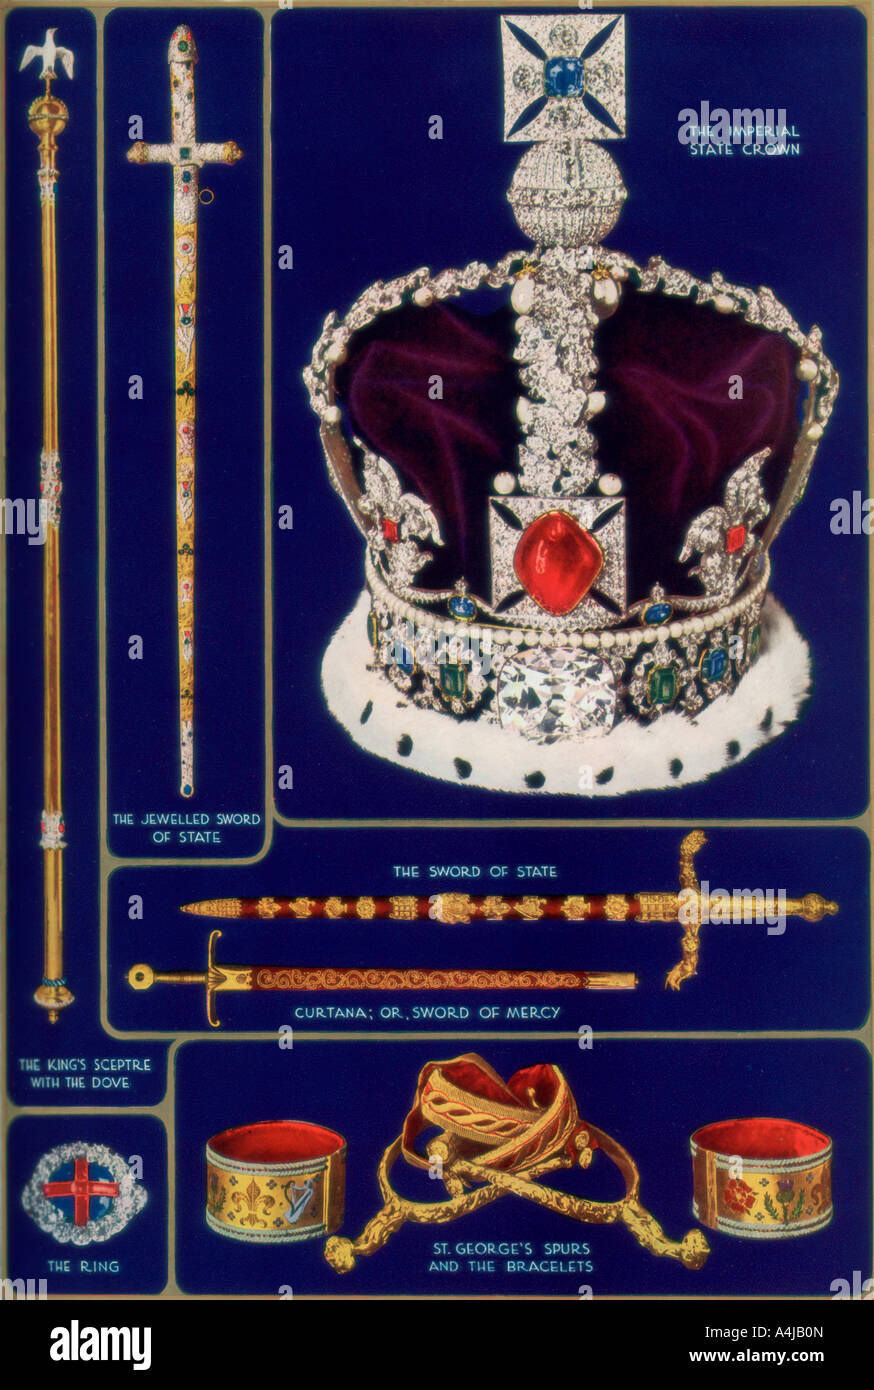 the pshent crown artifact represents united Find out about crown jewels of the united kingdom on the iron chest may have been this artifact  church and state and the latter represents.